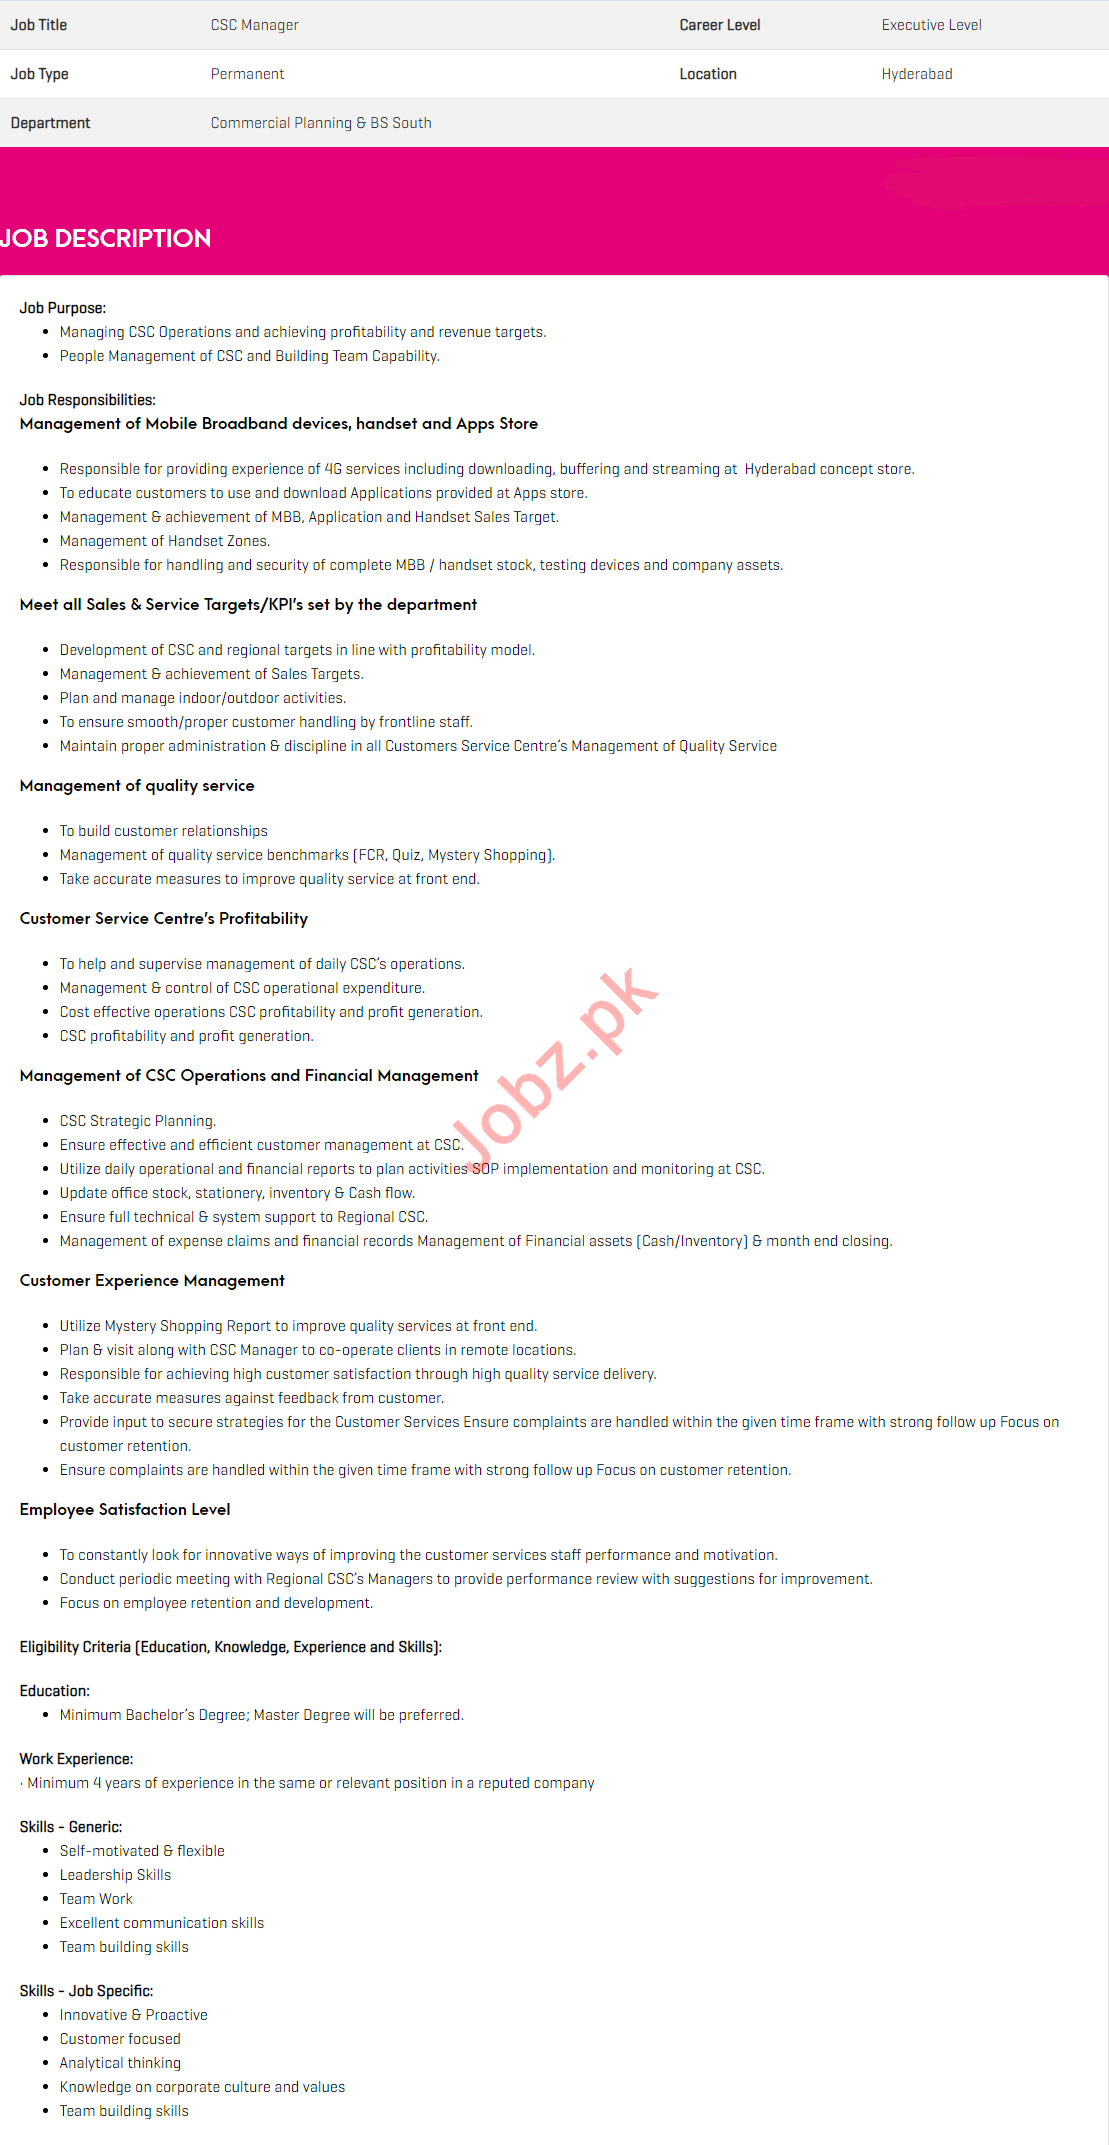 Zong Pakistan Job For CSC Manager in Hyderabad